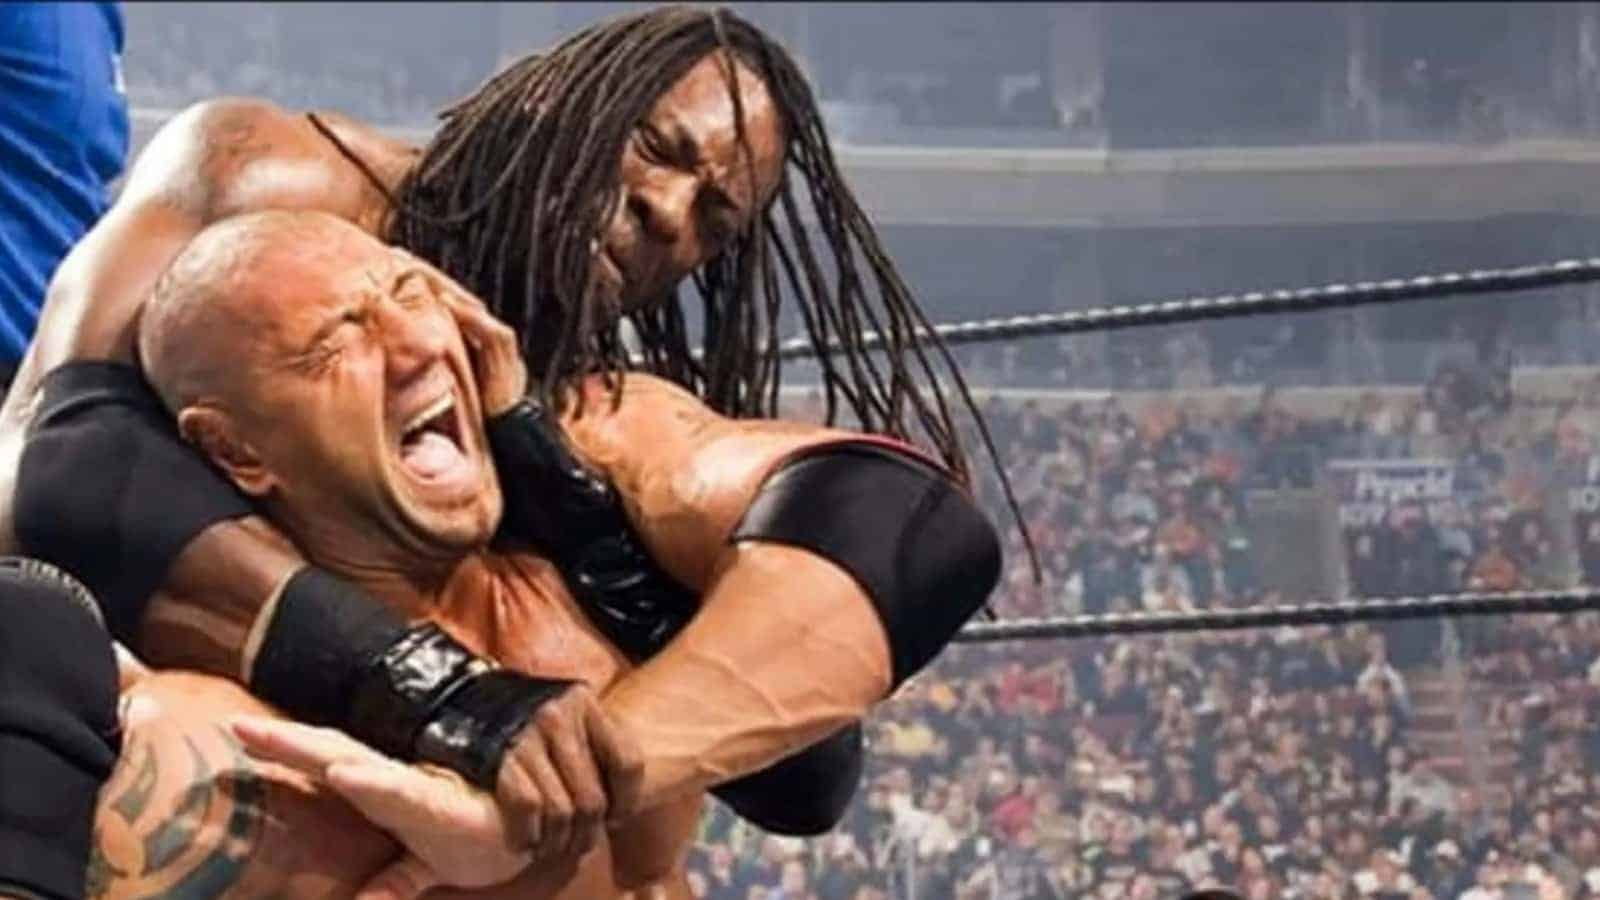 batista and booker t